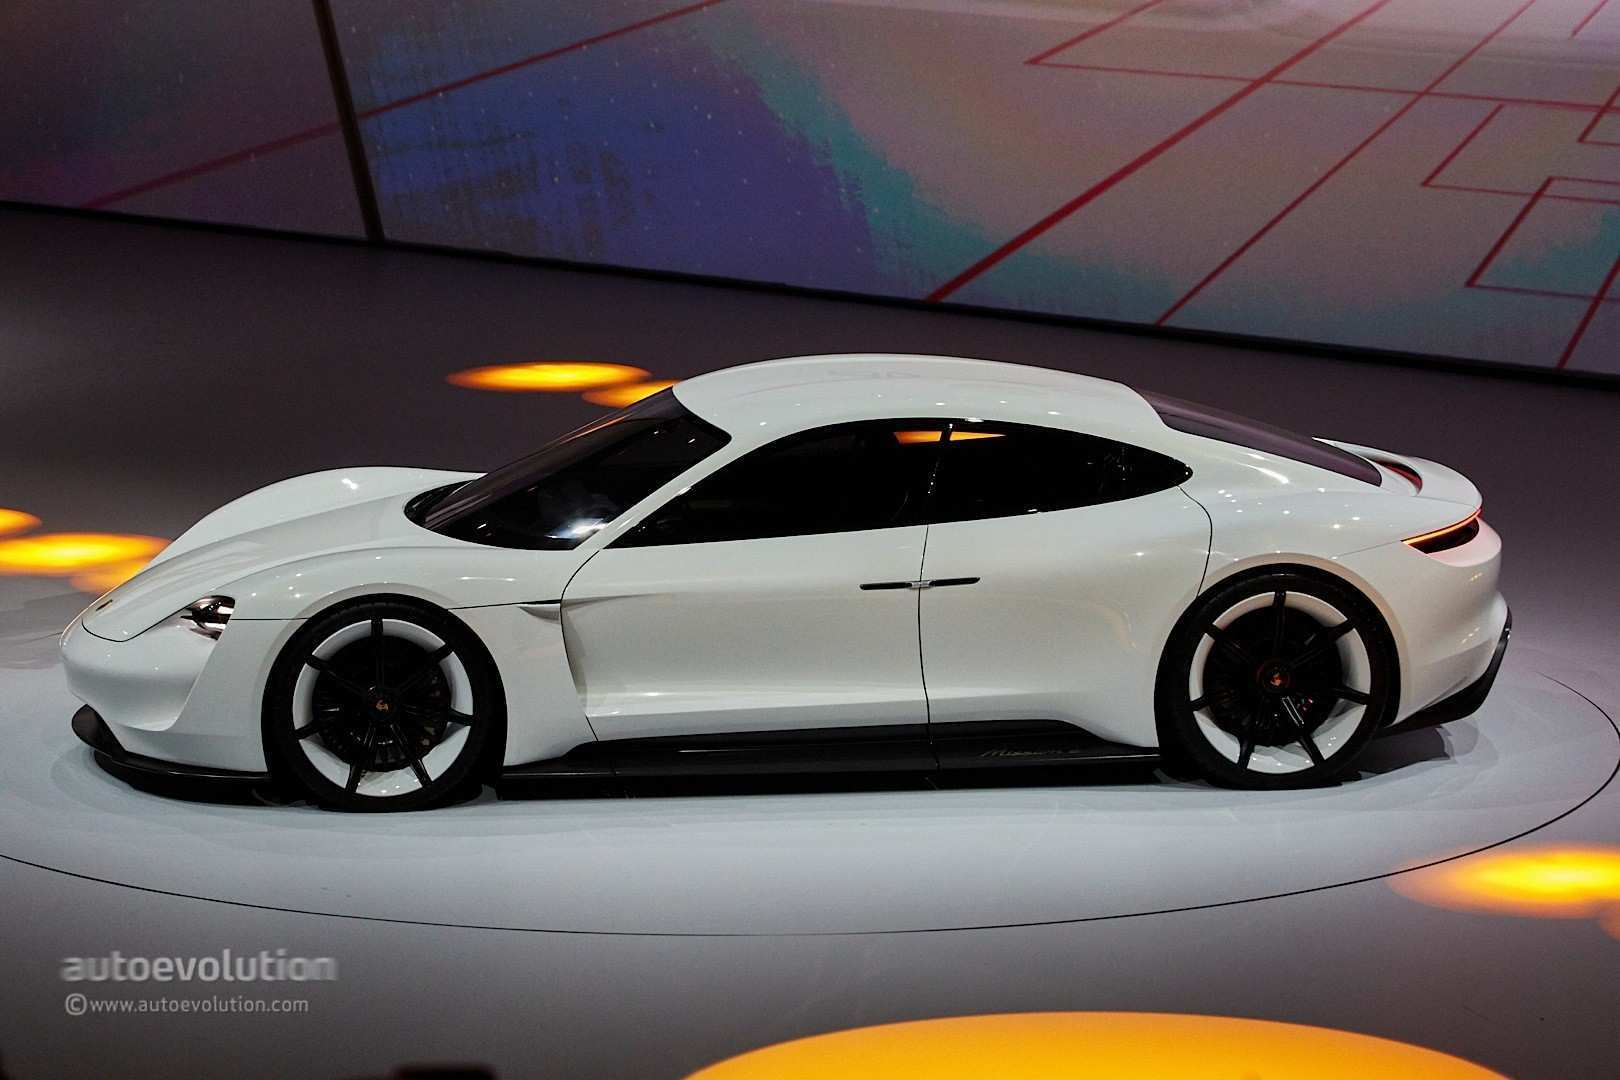 48 All New 2020 Porsche Mission E First Drive for 2020 Porsche Mission E